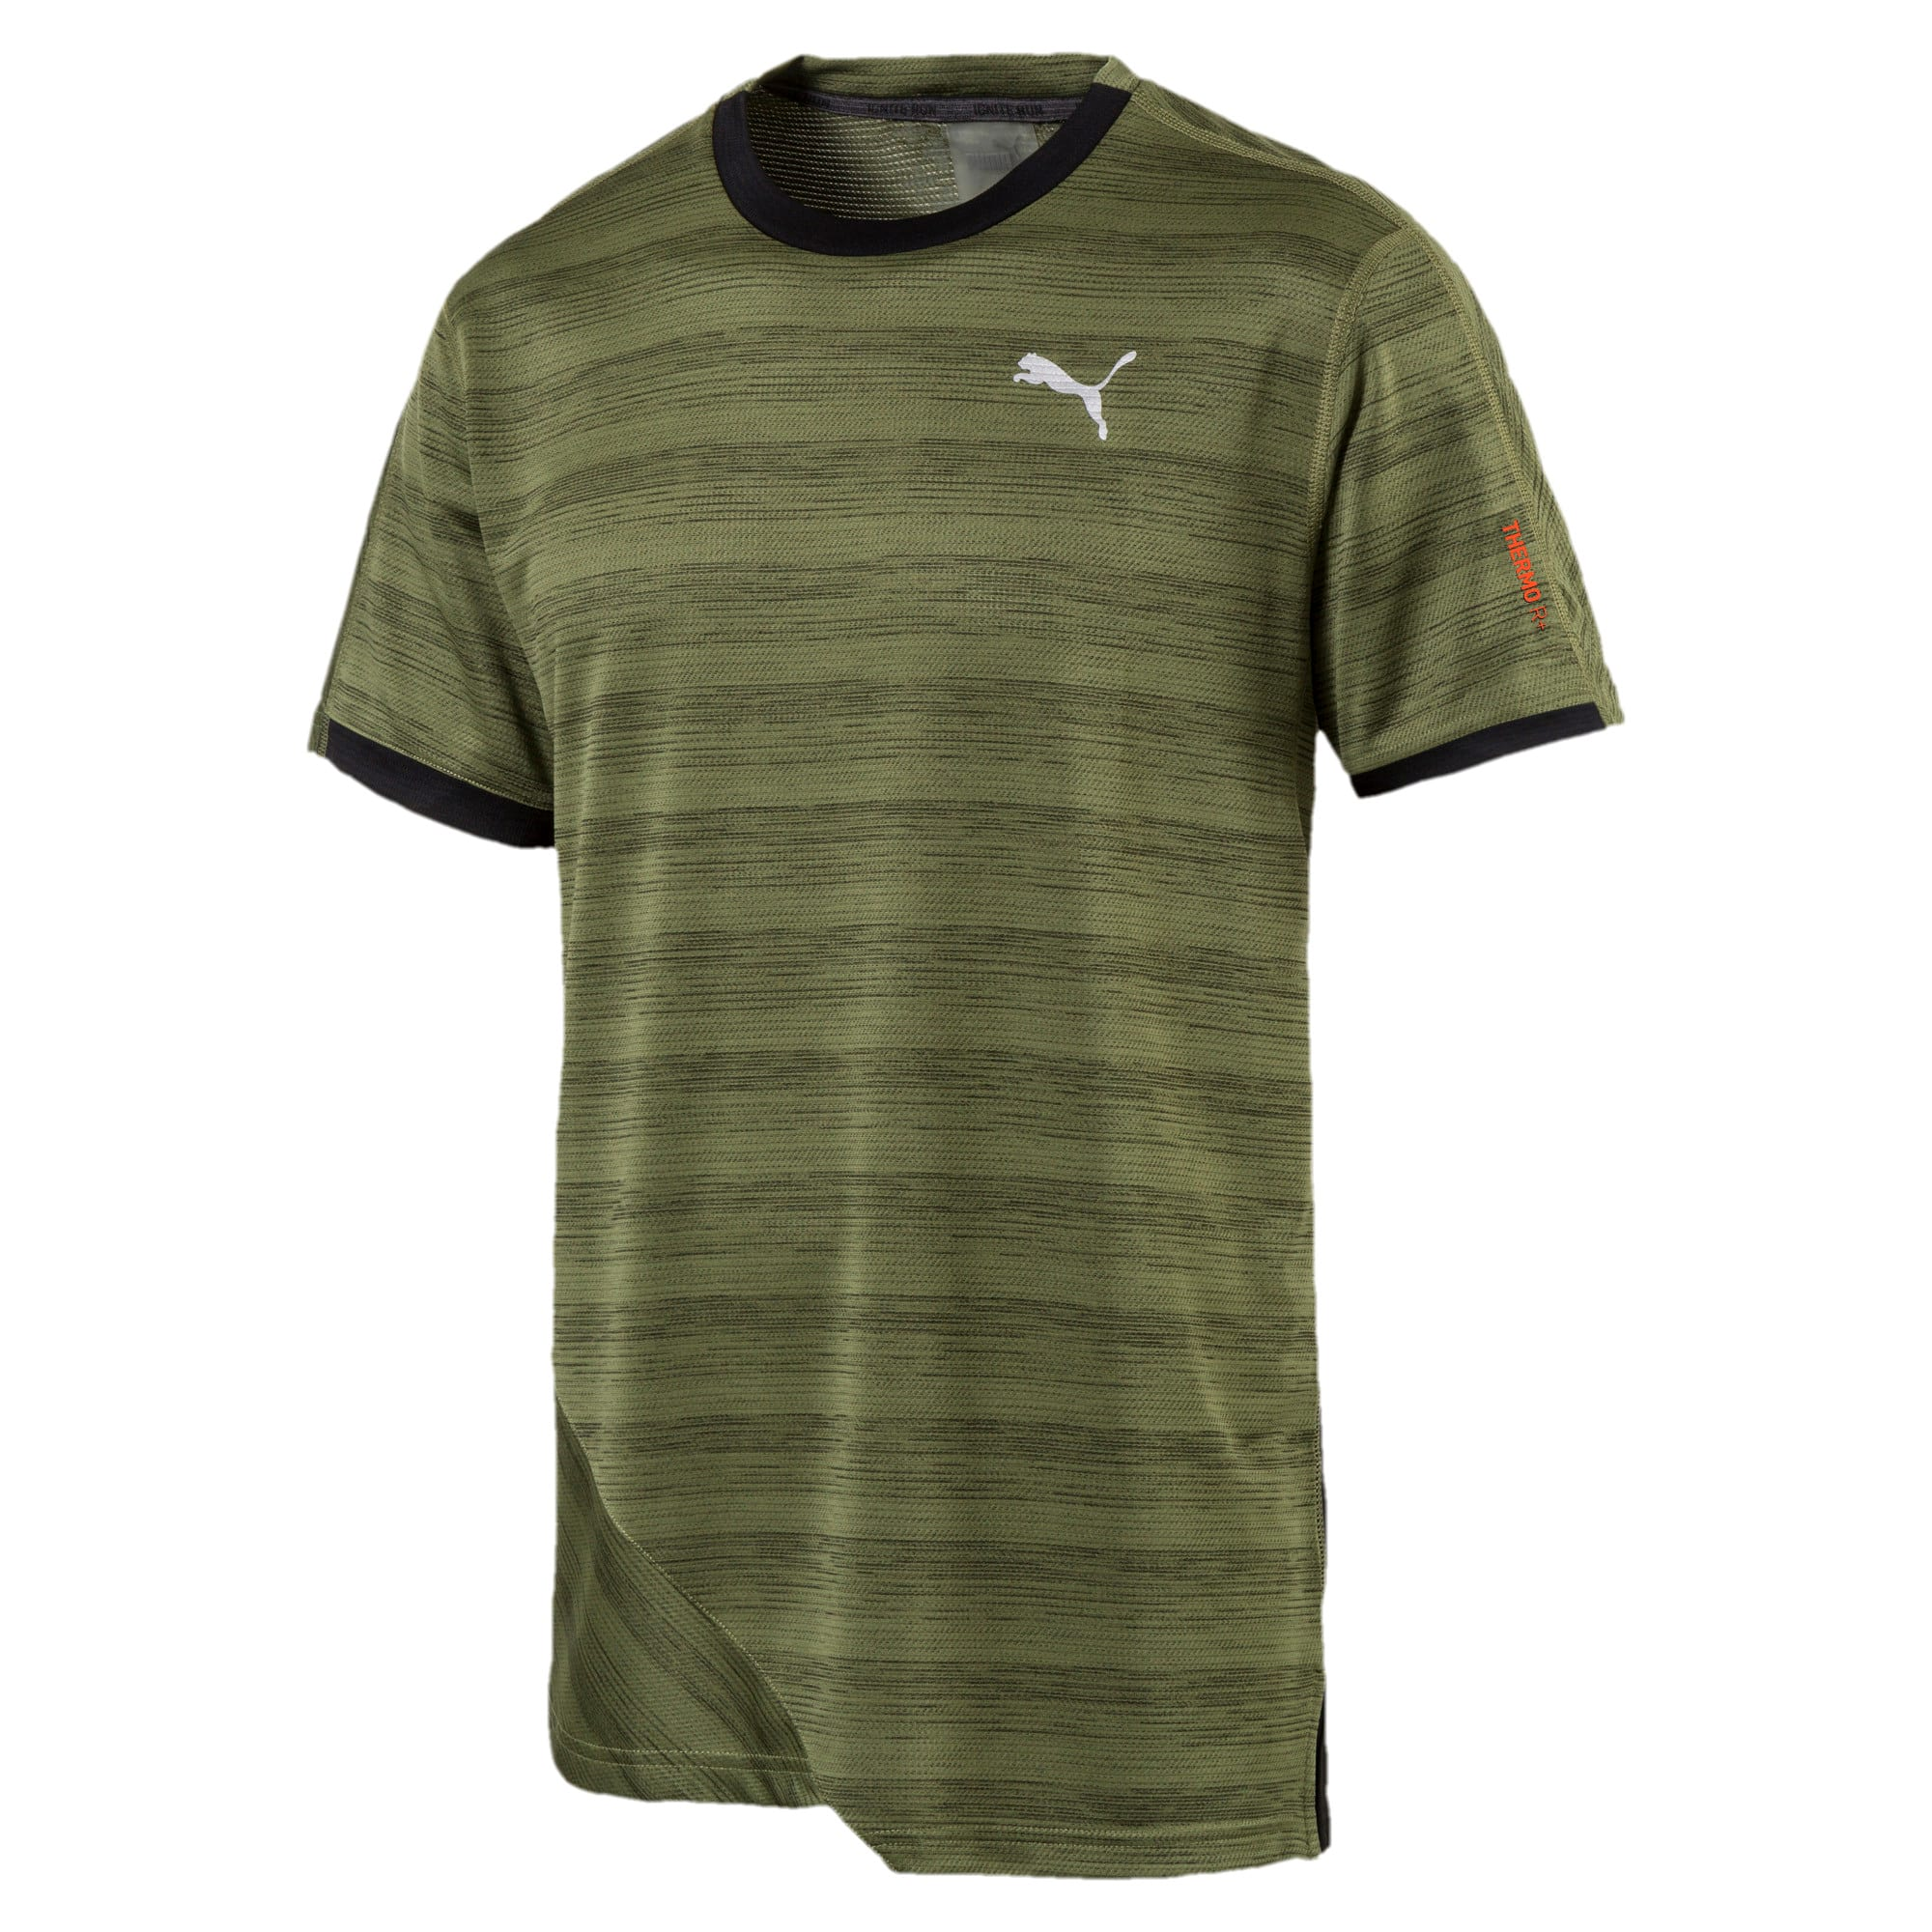 Thumbnail 1 of PACE Breeze Herren Running T-Shirt, Olivine-Puma Black, medium